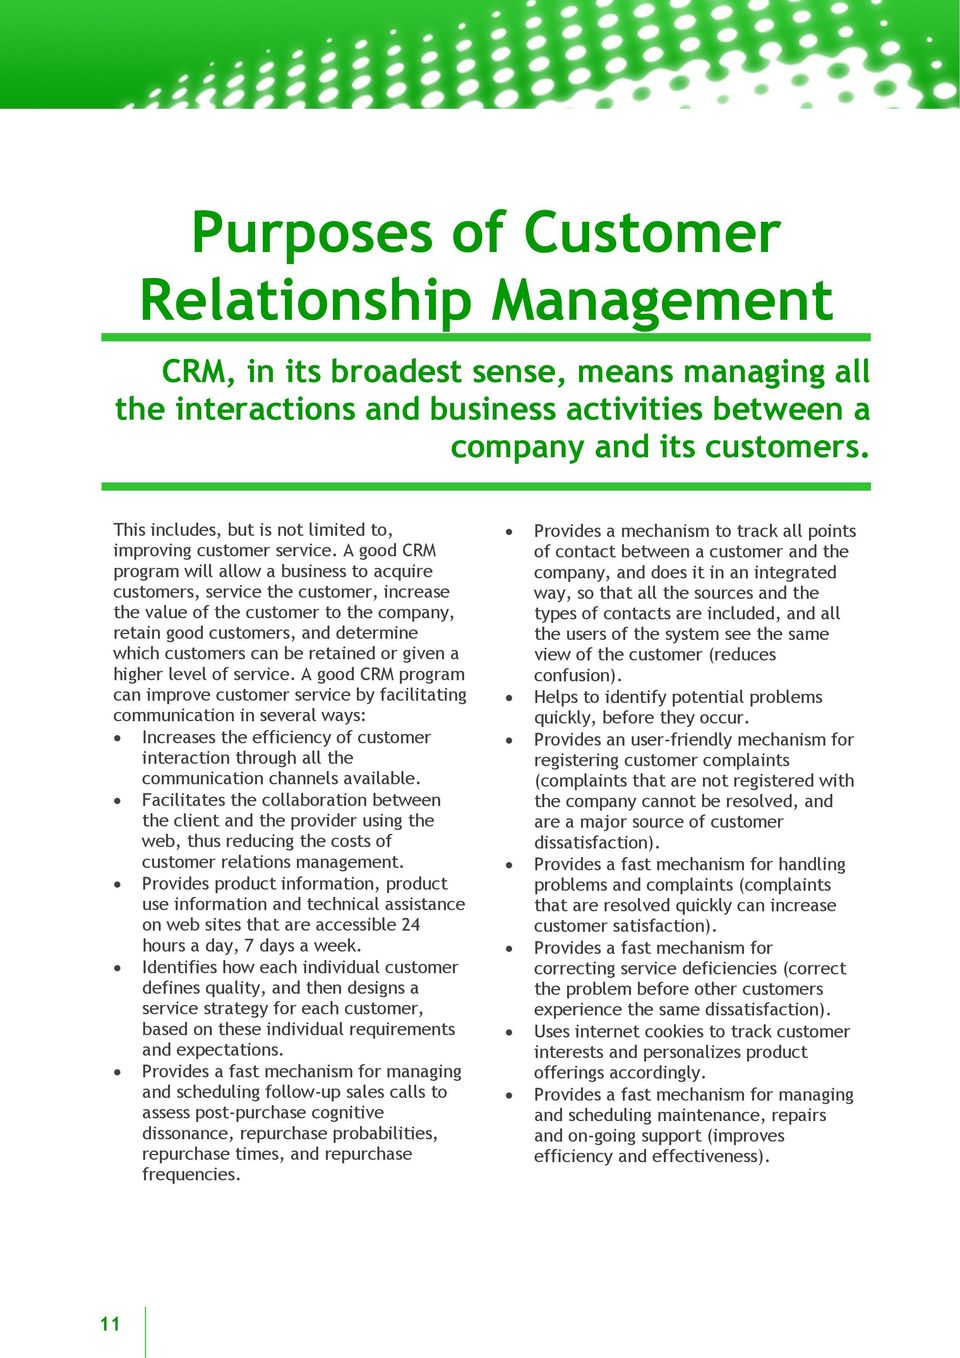 A good CRM program will allow a business to acquire customers, service the customer, increase the value of the customer to the company, retain good customers, and determine which customers can be